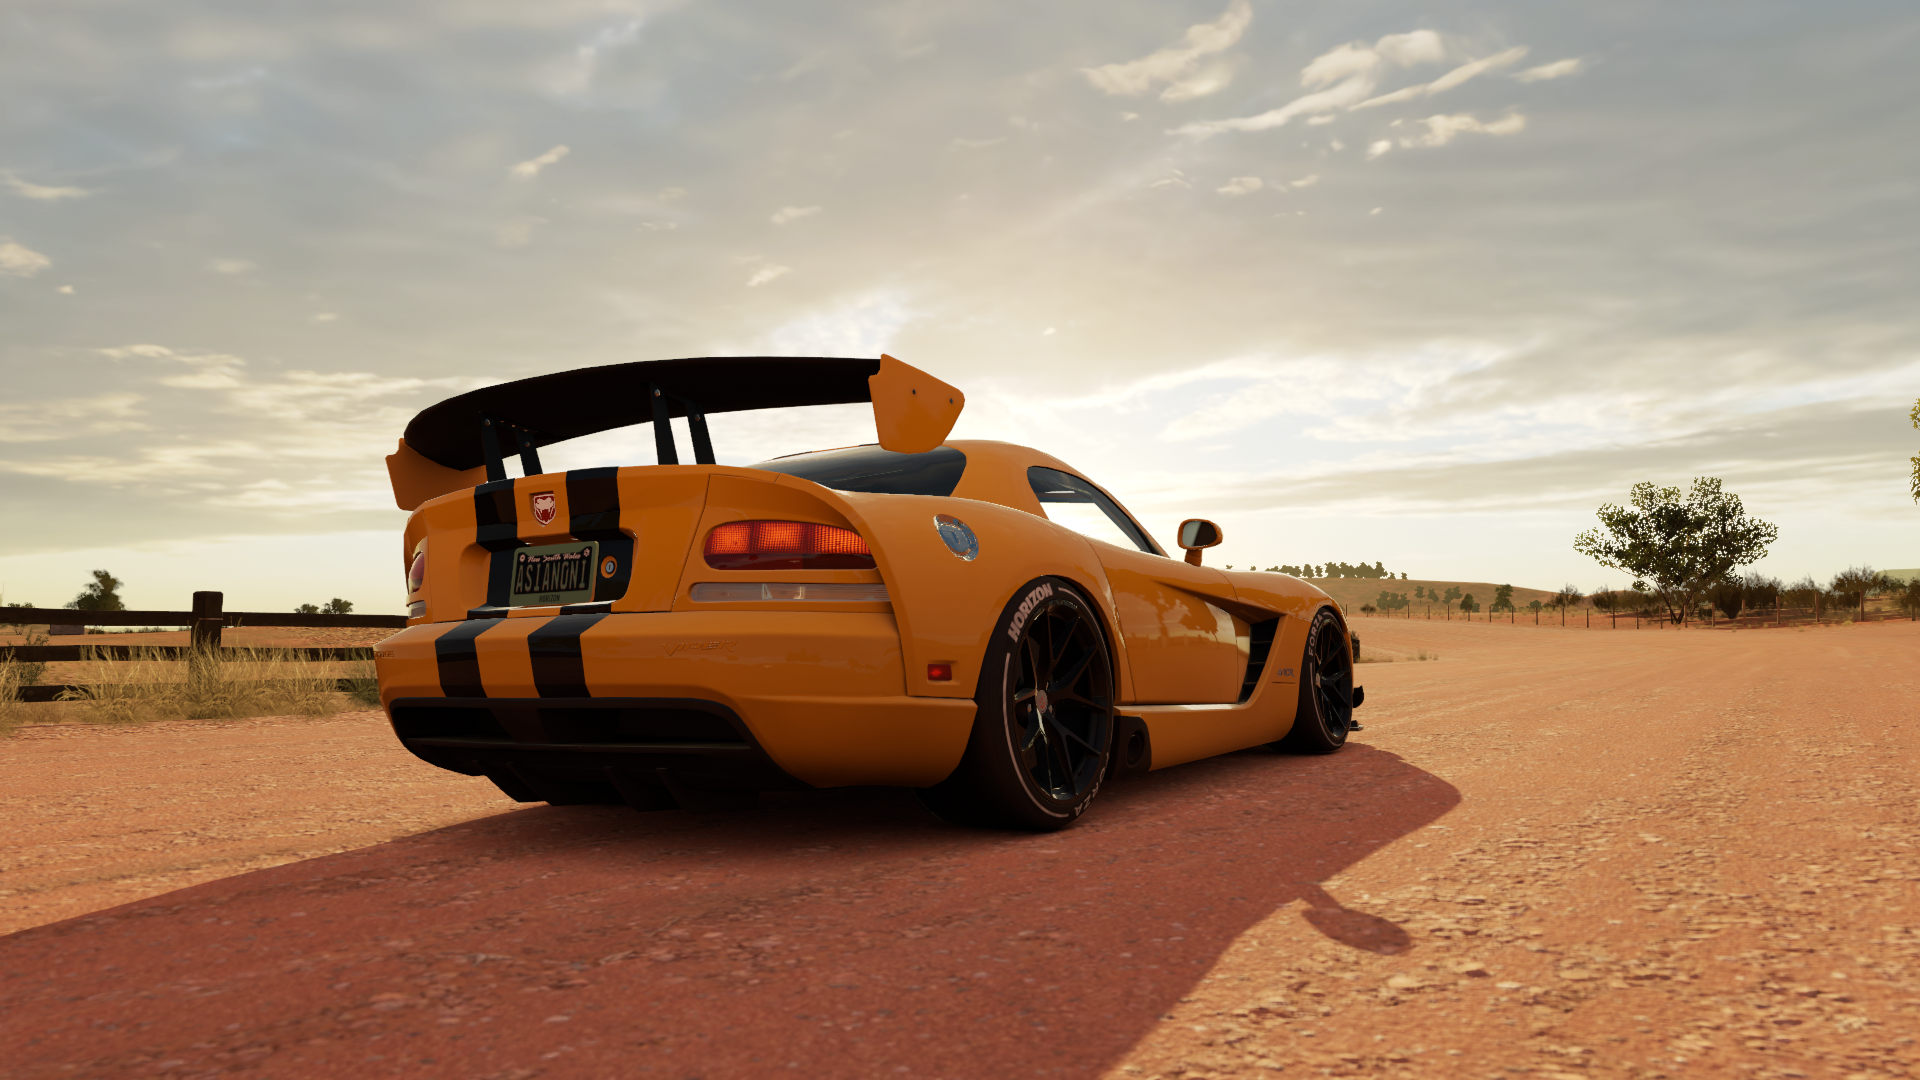 forza horizon 3 photo gif thread page 3 discussion rllmuk. Black Bedroom Furniture Sets. Home Design Ideas